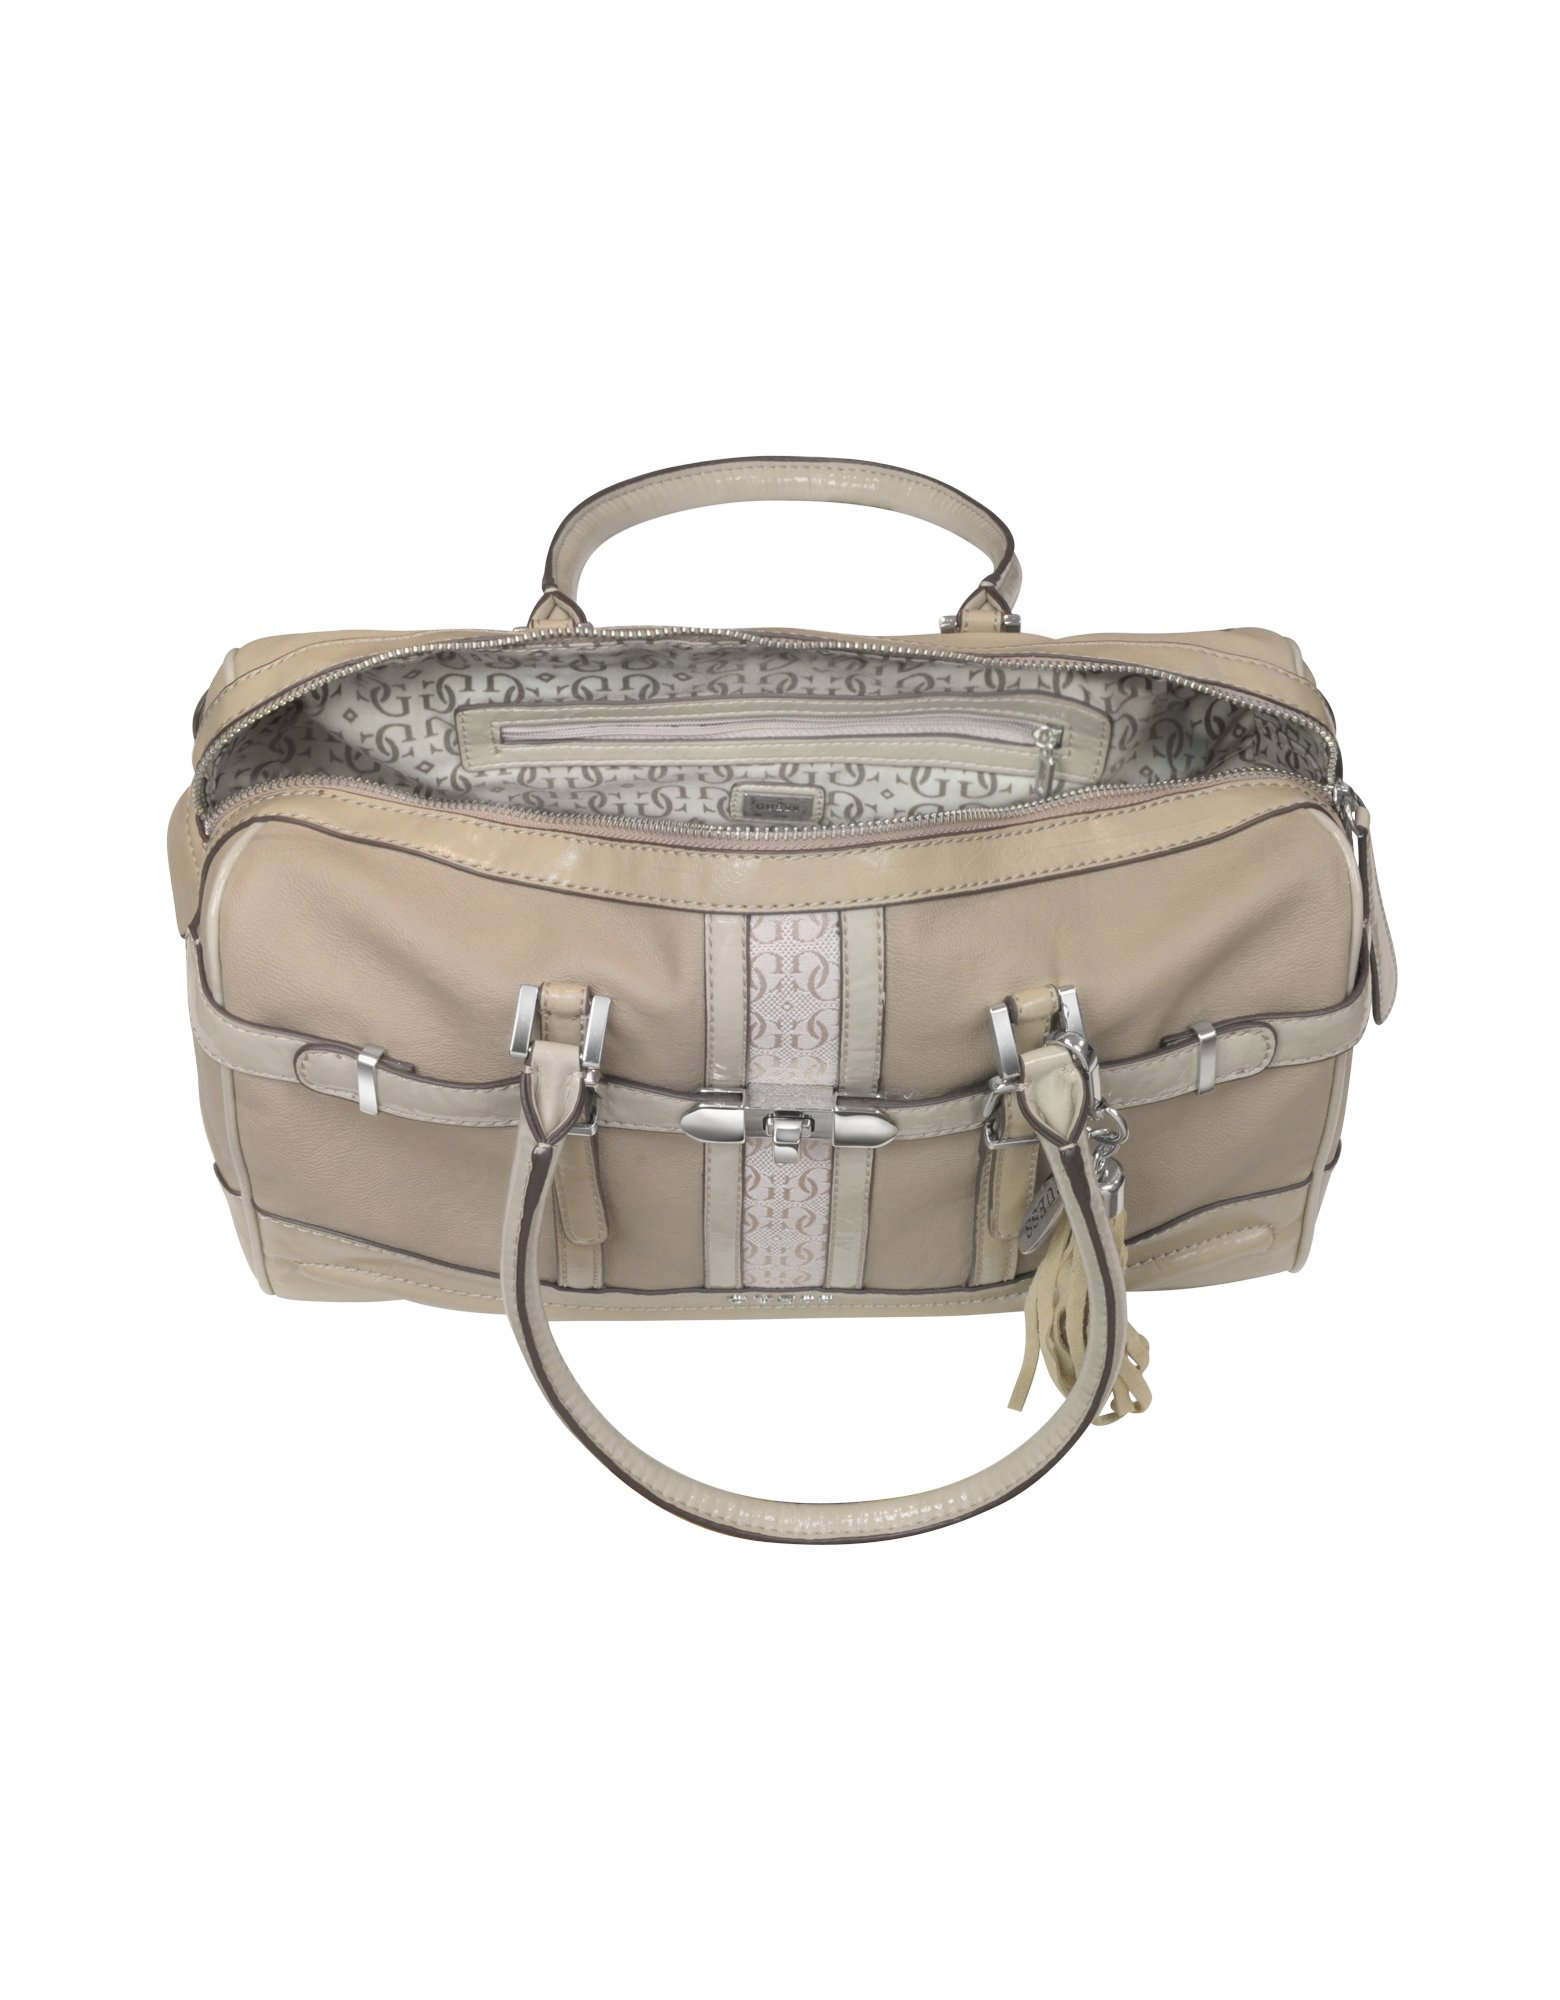 Lyst - Guess Scent City - Box Satchel Bag in Natural e045dac1296e7